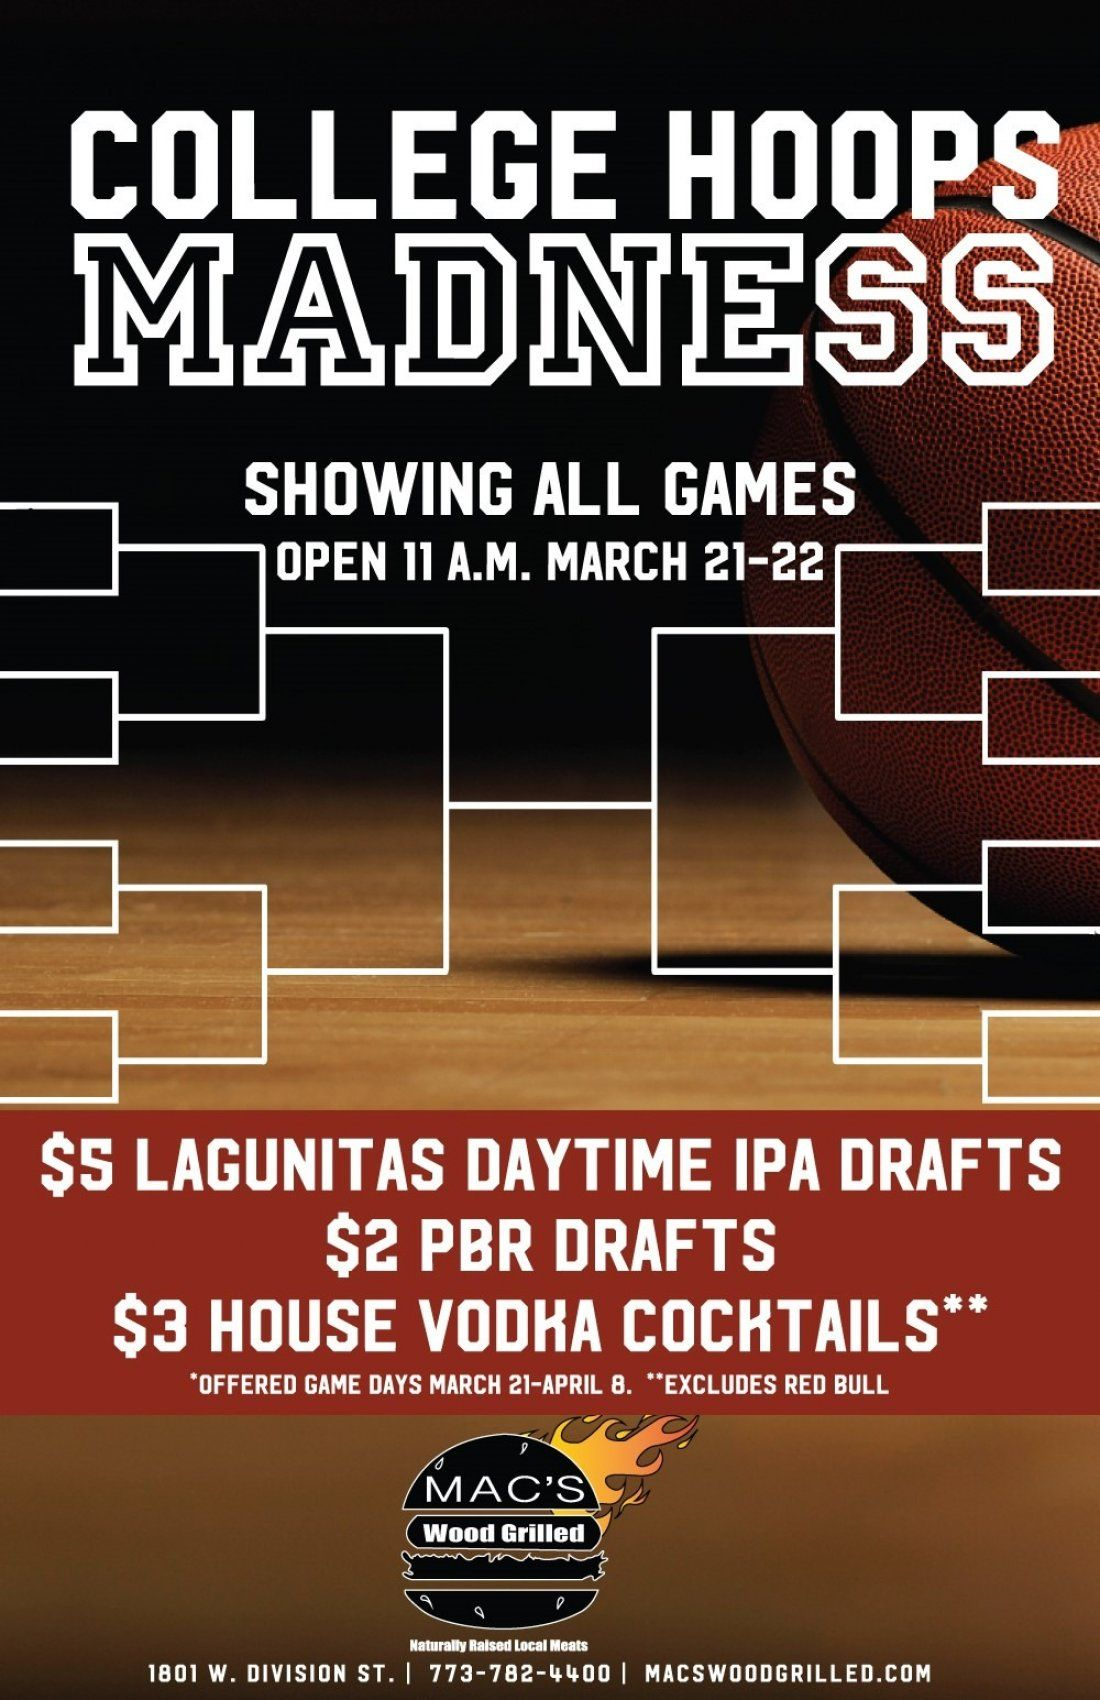 College Hoops Madness at Macs Wood Grilled